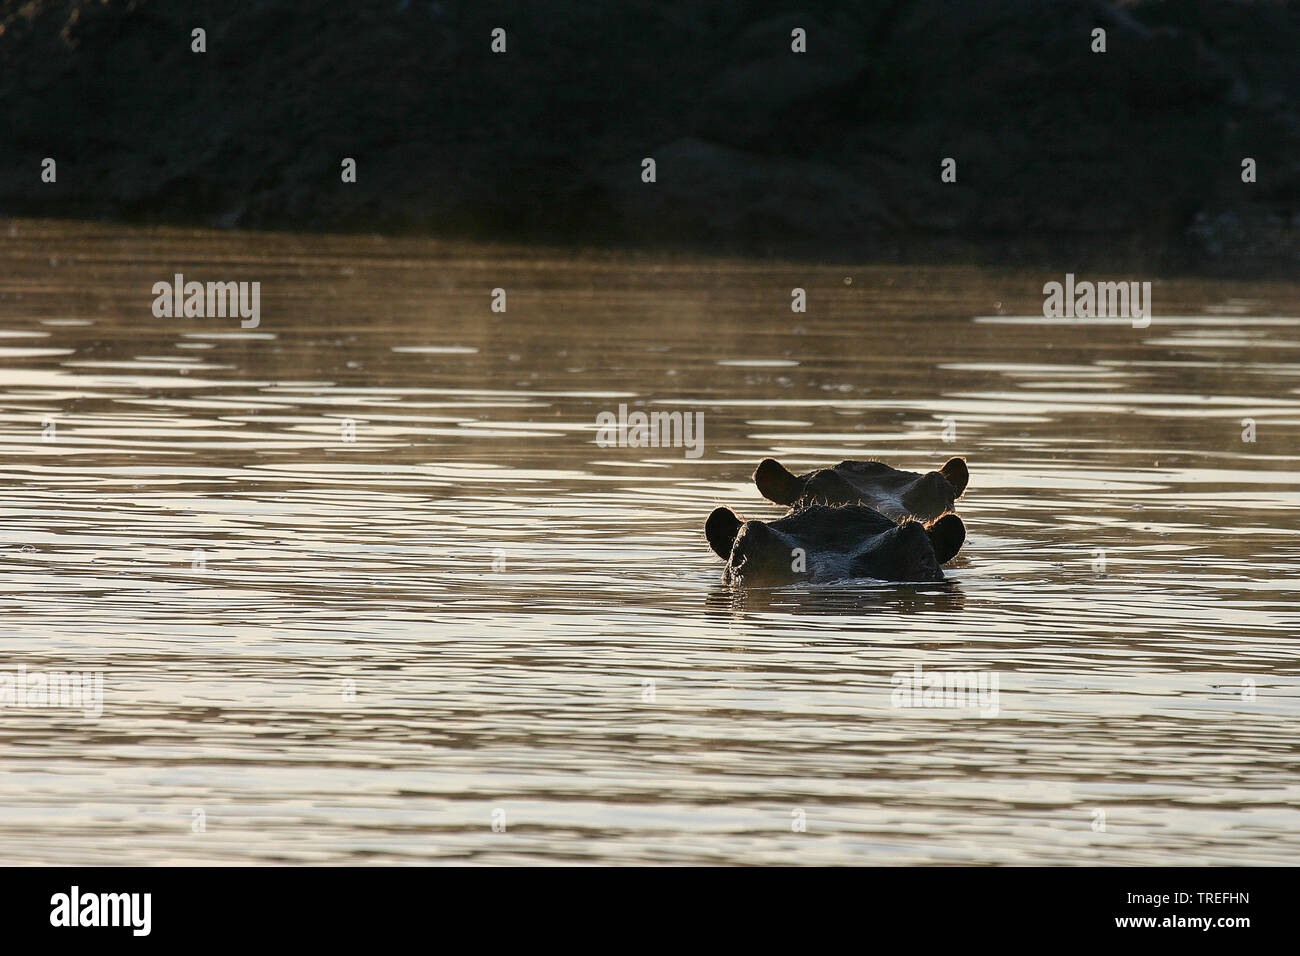 hippopotamus, hippo, Common hippopotamus (Hippopotamus amphibius), two hippos looking out the water, South Africa Stock Photo